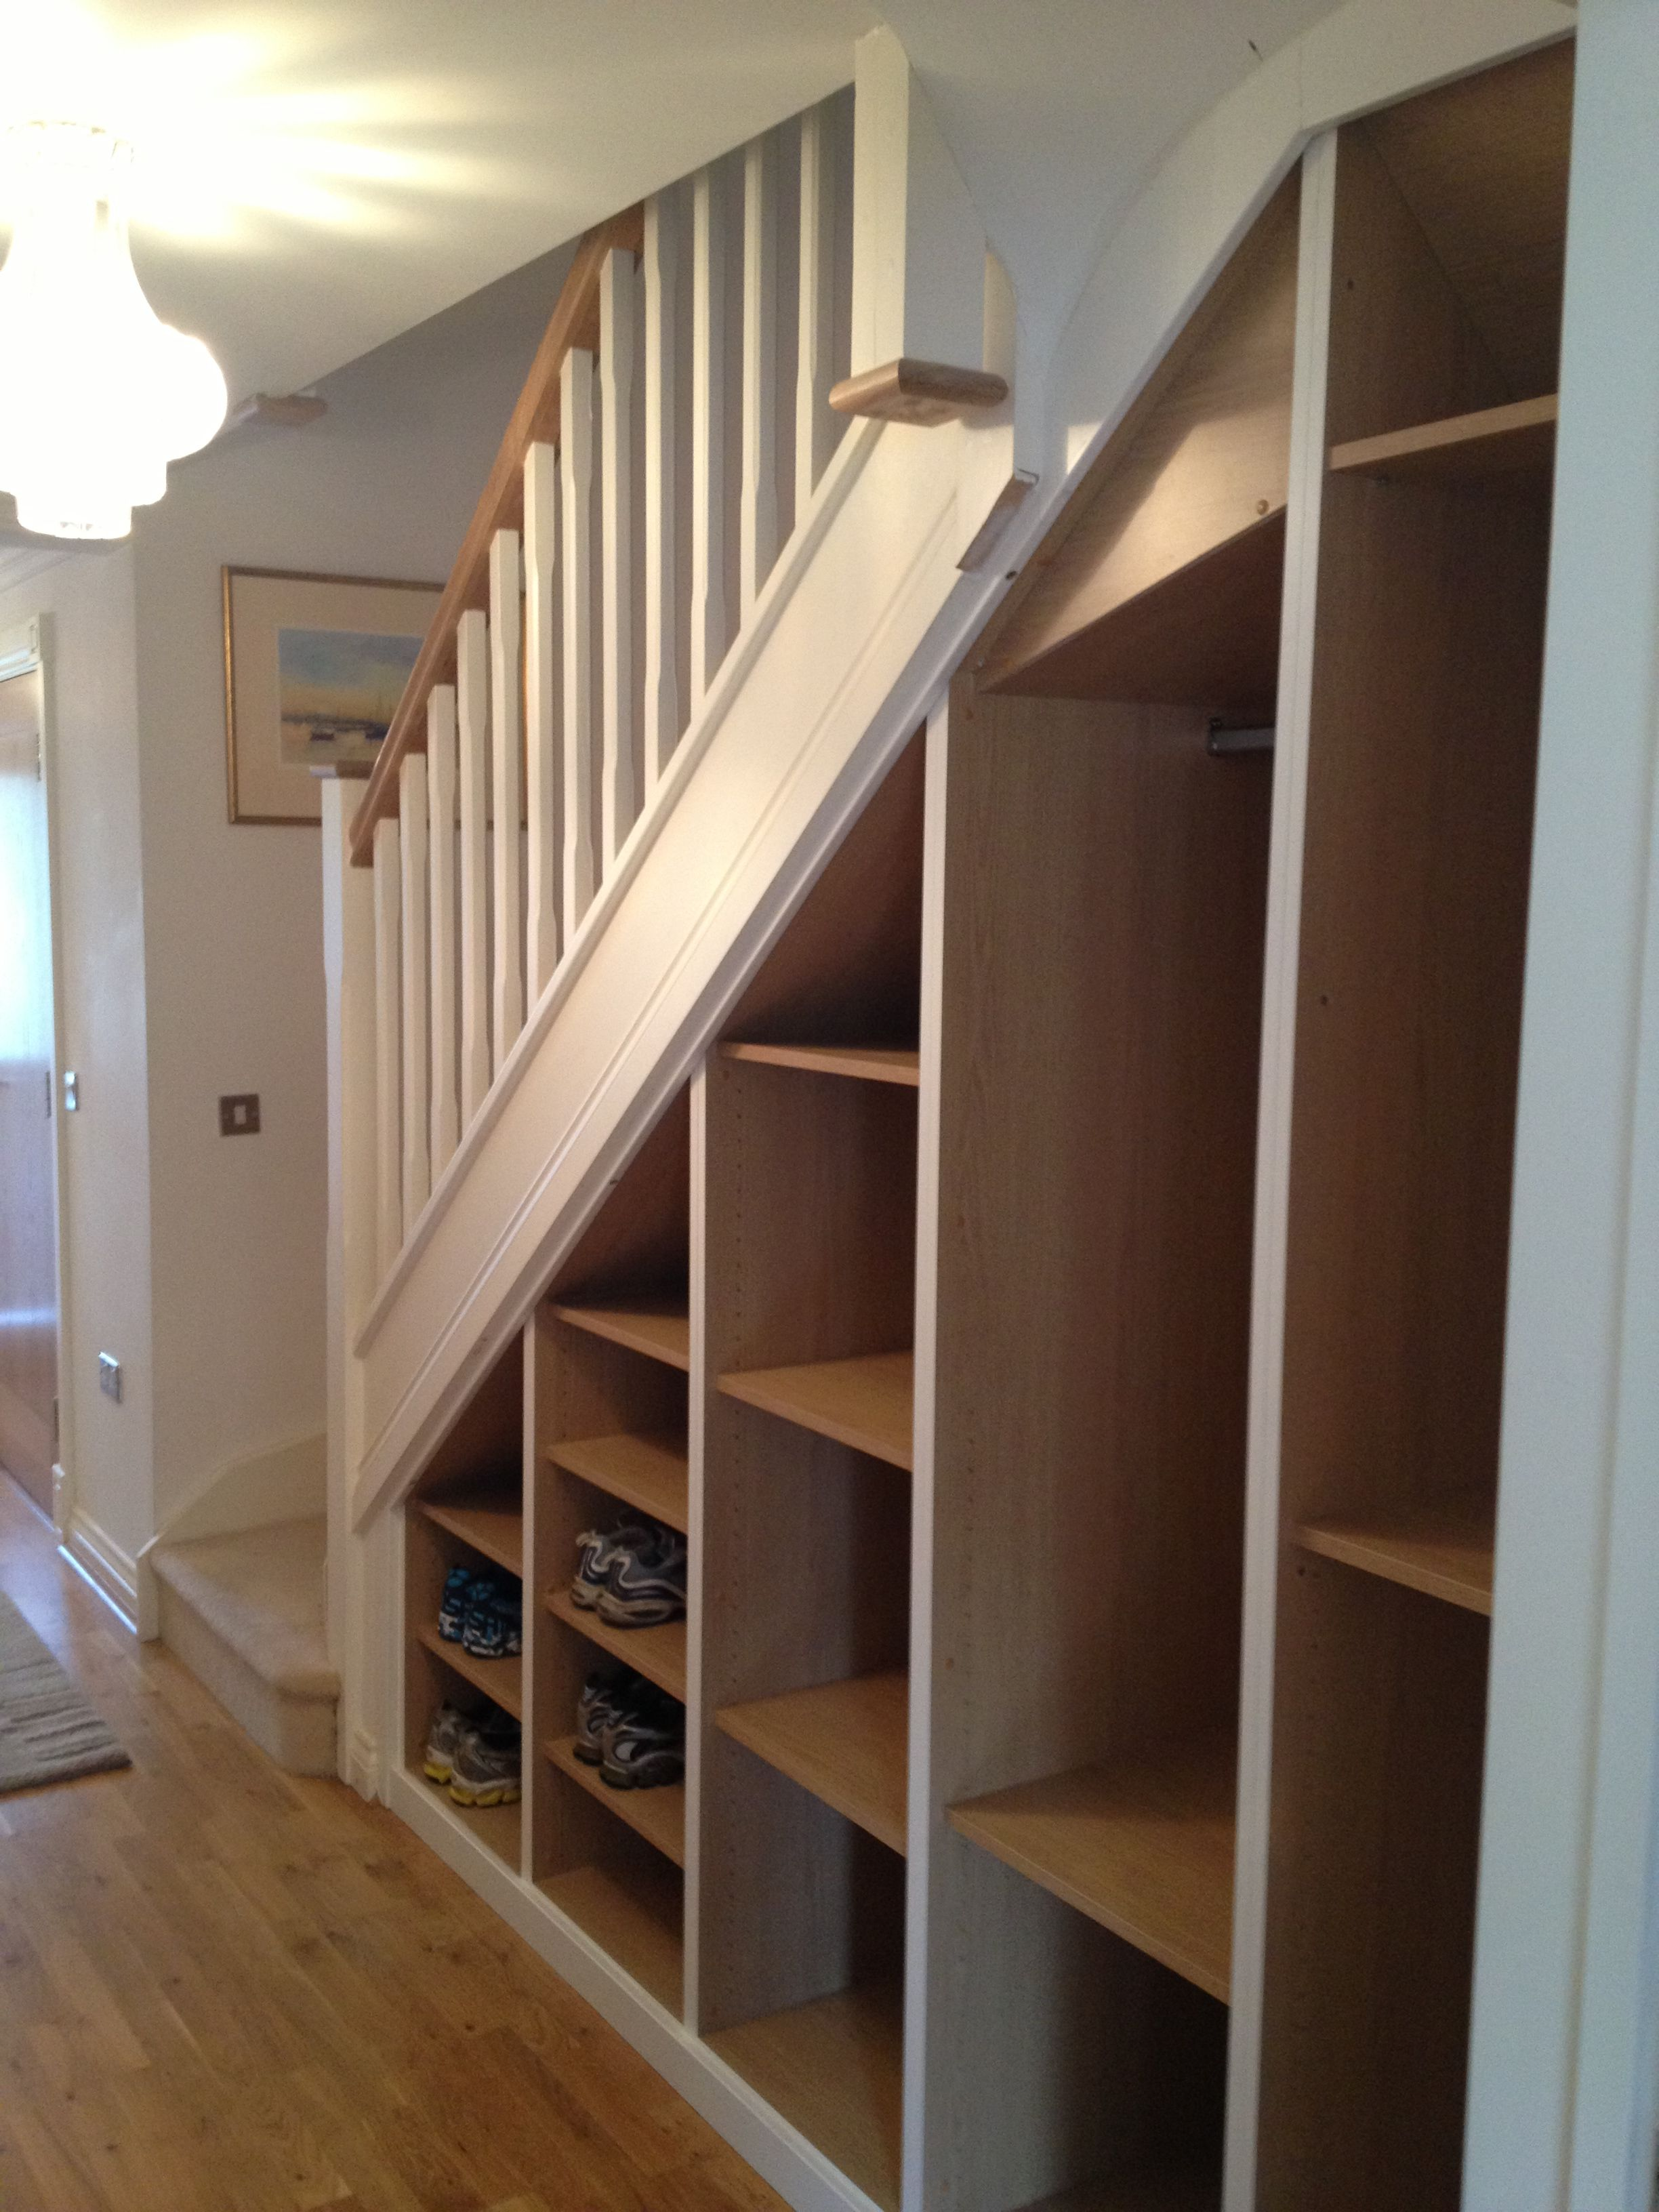 Bespoke Under Stairs Storage Without Doors By Anthony